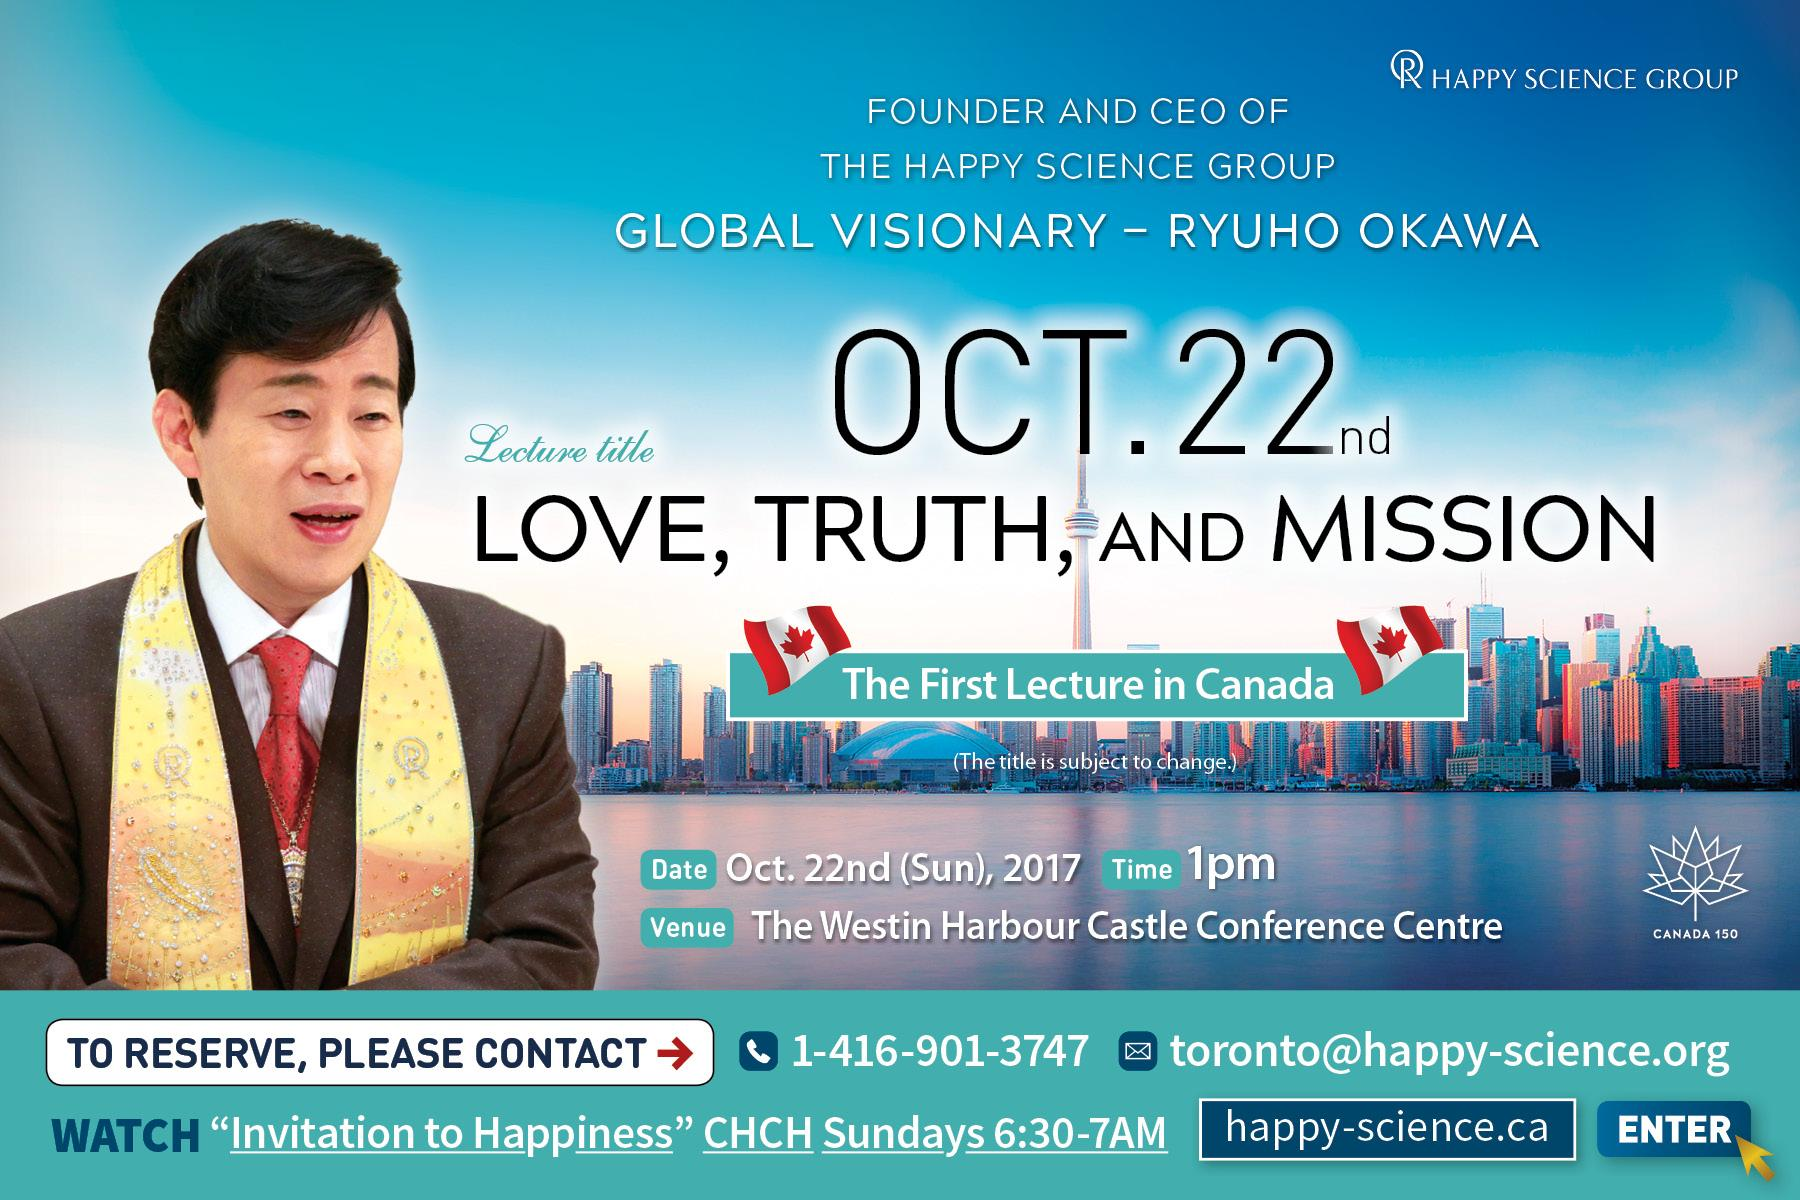 Ryuho Okawa Lecture Event ーLove, Truth, and Mission